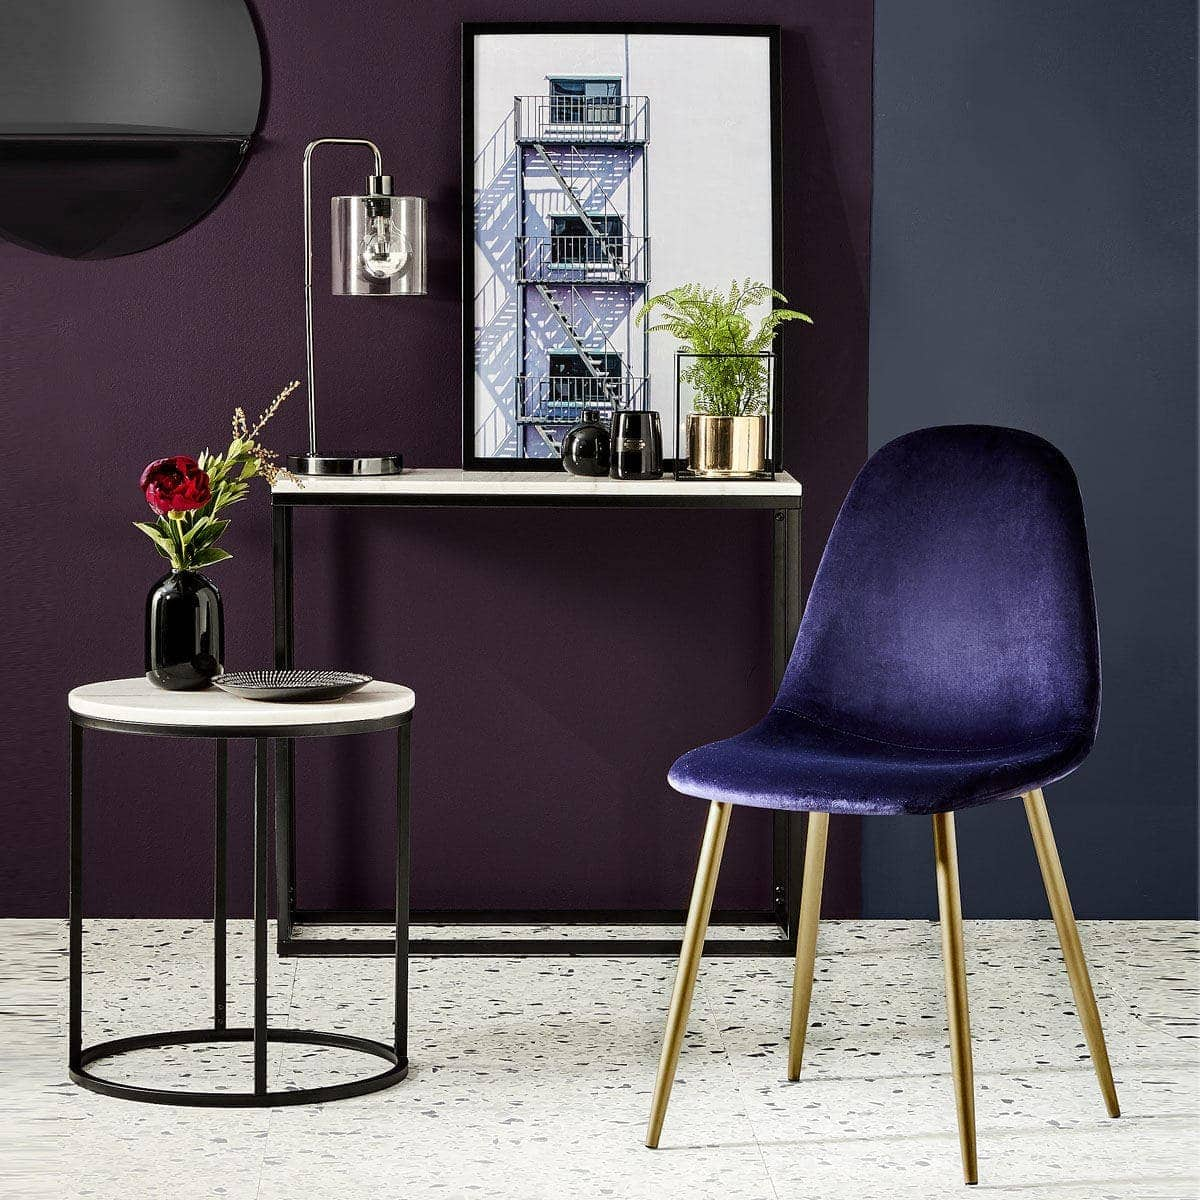 kmart velvet dining chair blue velvet upholstered chair